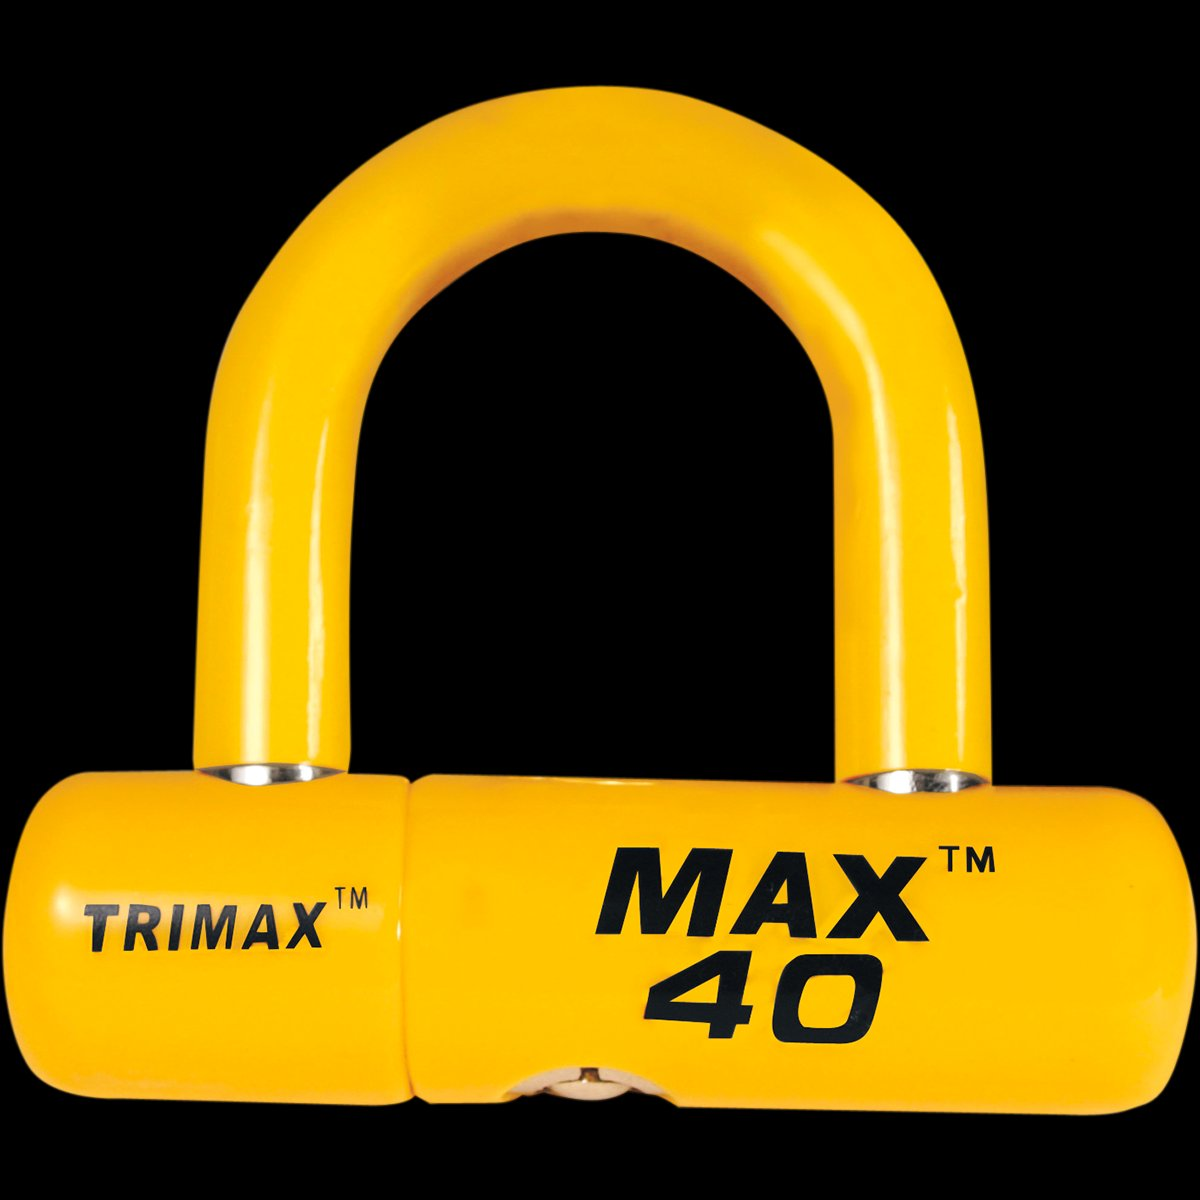 .TRIMAX ULTRA-HIGH-SECURITY DISC/CABLE LOCKS